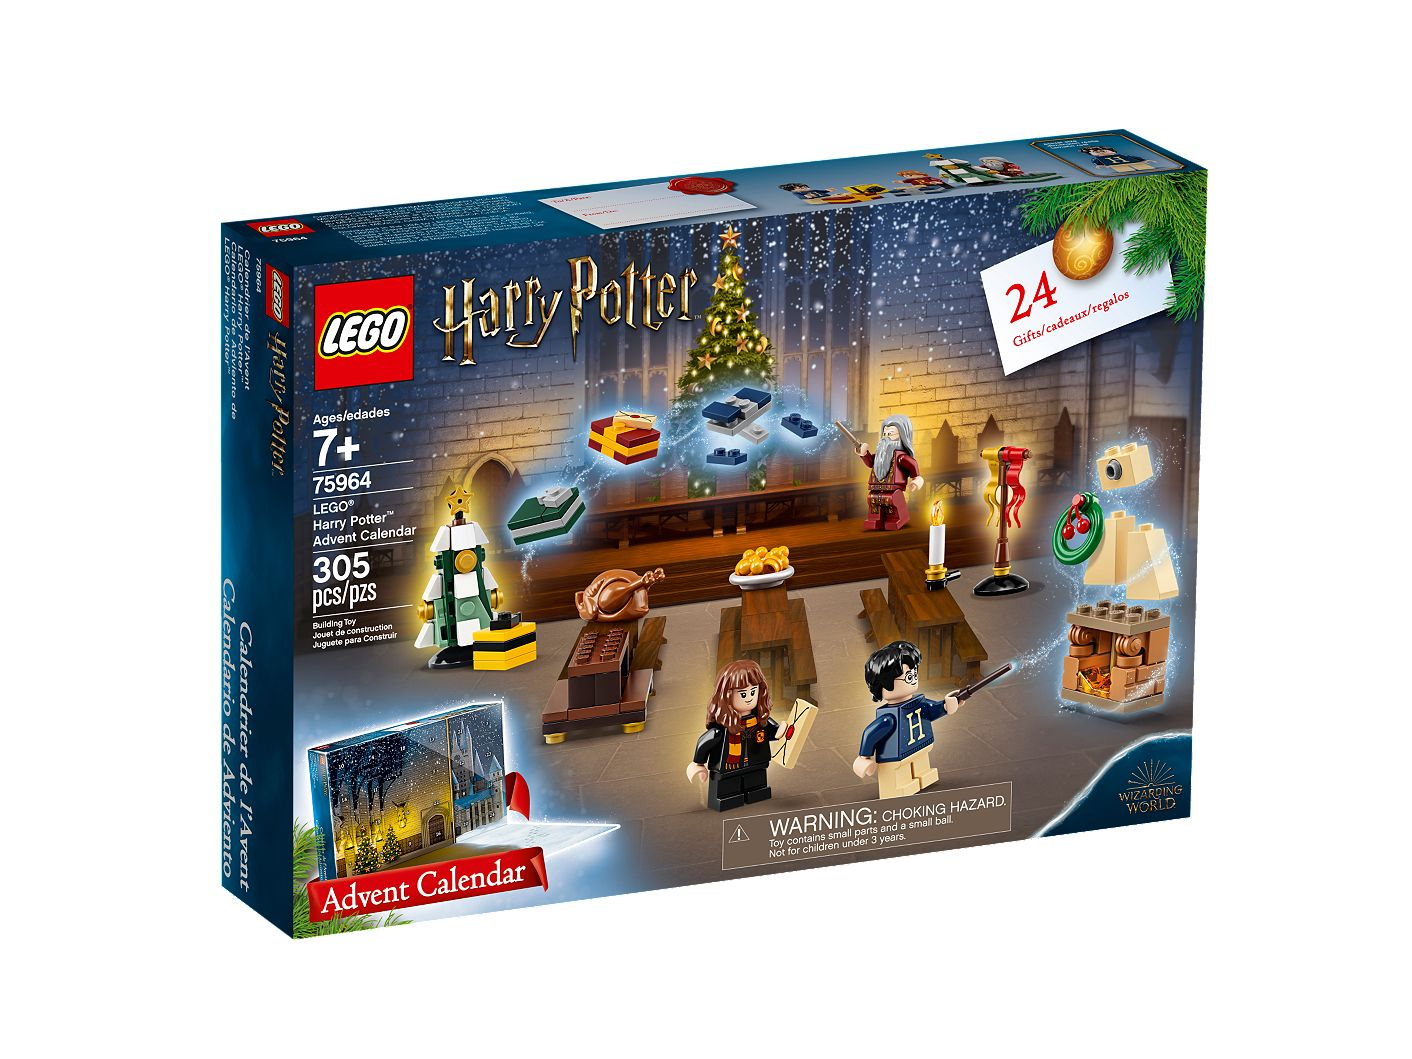 Harry Potter Advent Calendar.Lego Harry Potter Advent Calendar 75964 Harry Potter Buy Online At The Official Lego Shop Us